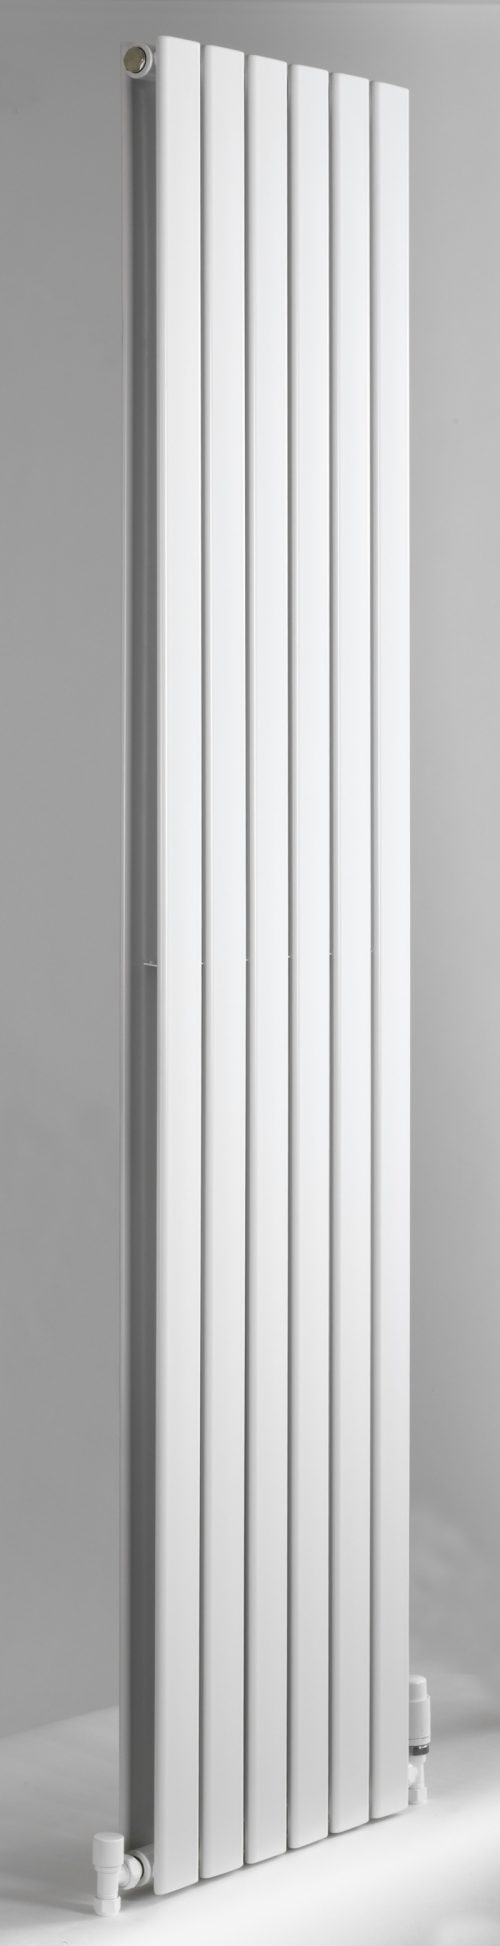 DQ Axis Vertical Radiator-0